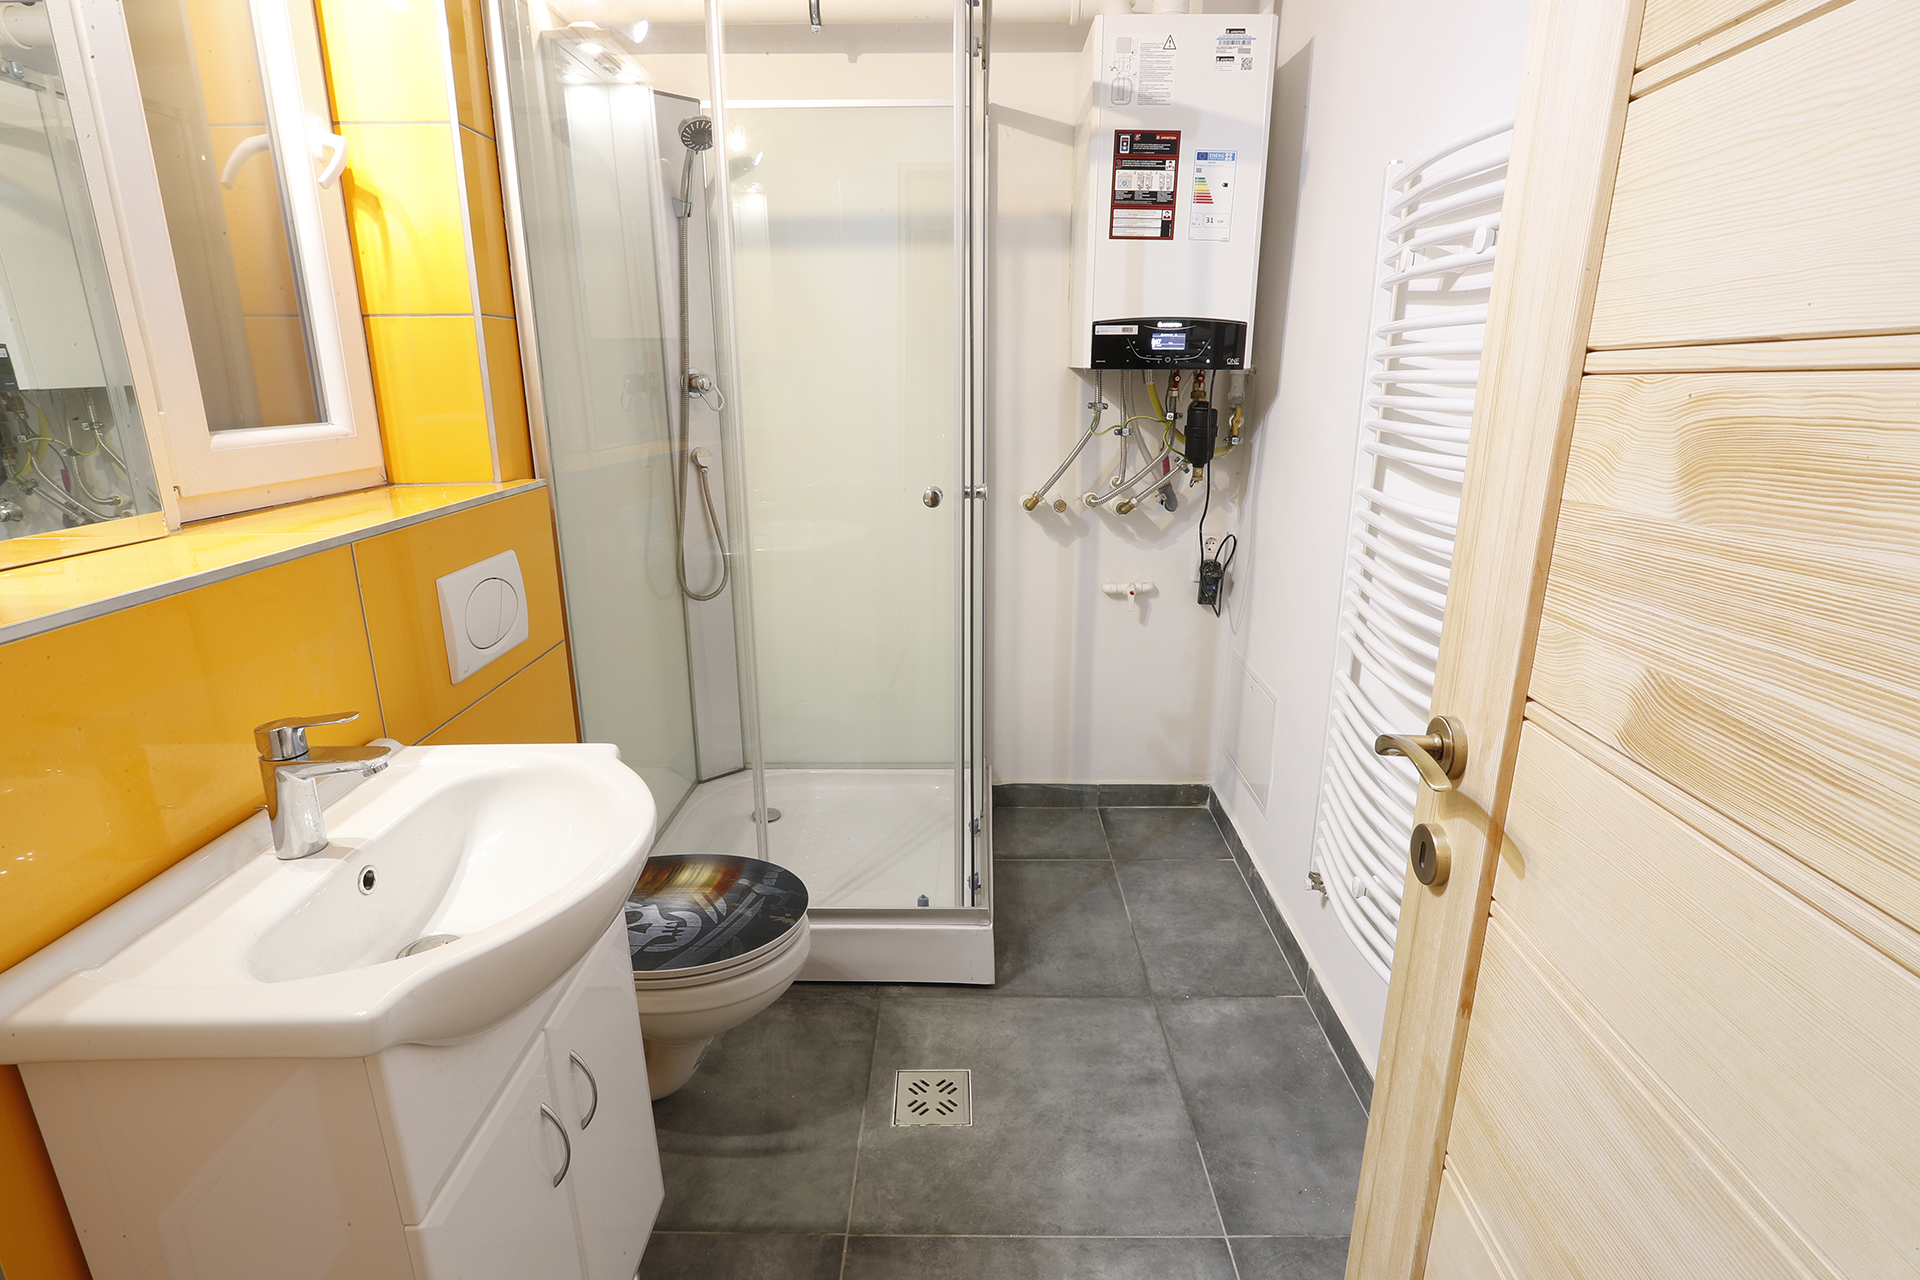 Bathroom_1_Student_room_for_rent_in_Budapest